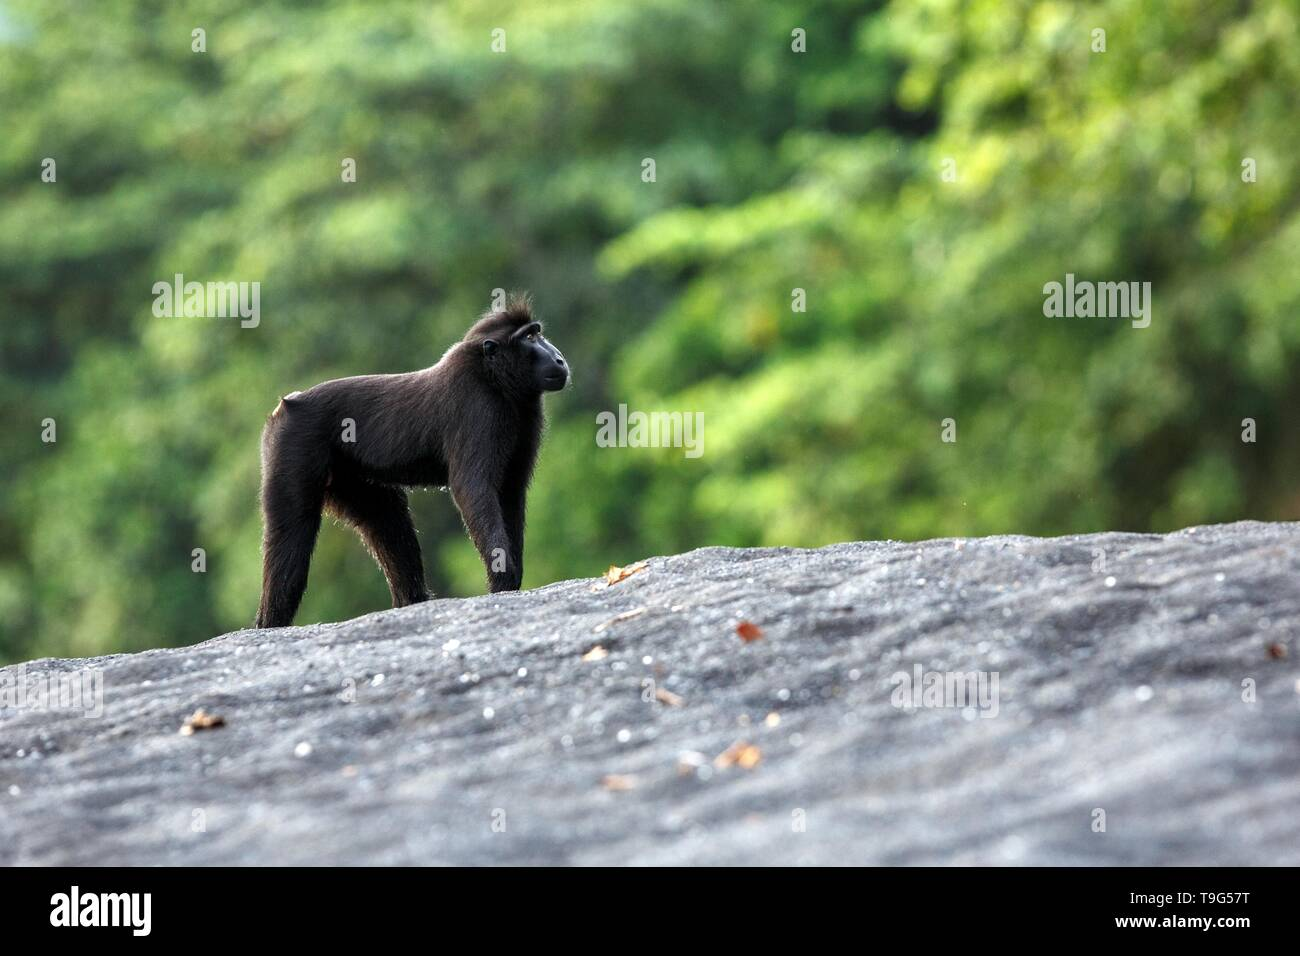 Black macaque standing on black sand on the beach. Close up portrait. Endemic black crested macaque or the black ape. Unique mammals in Tangkoko Natio - Stock Image